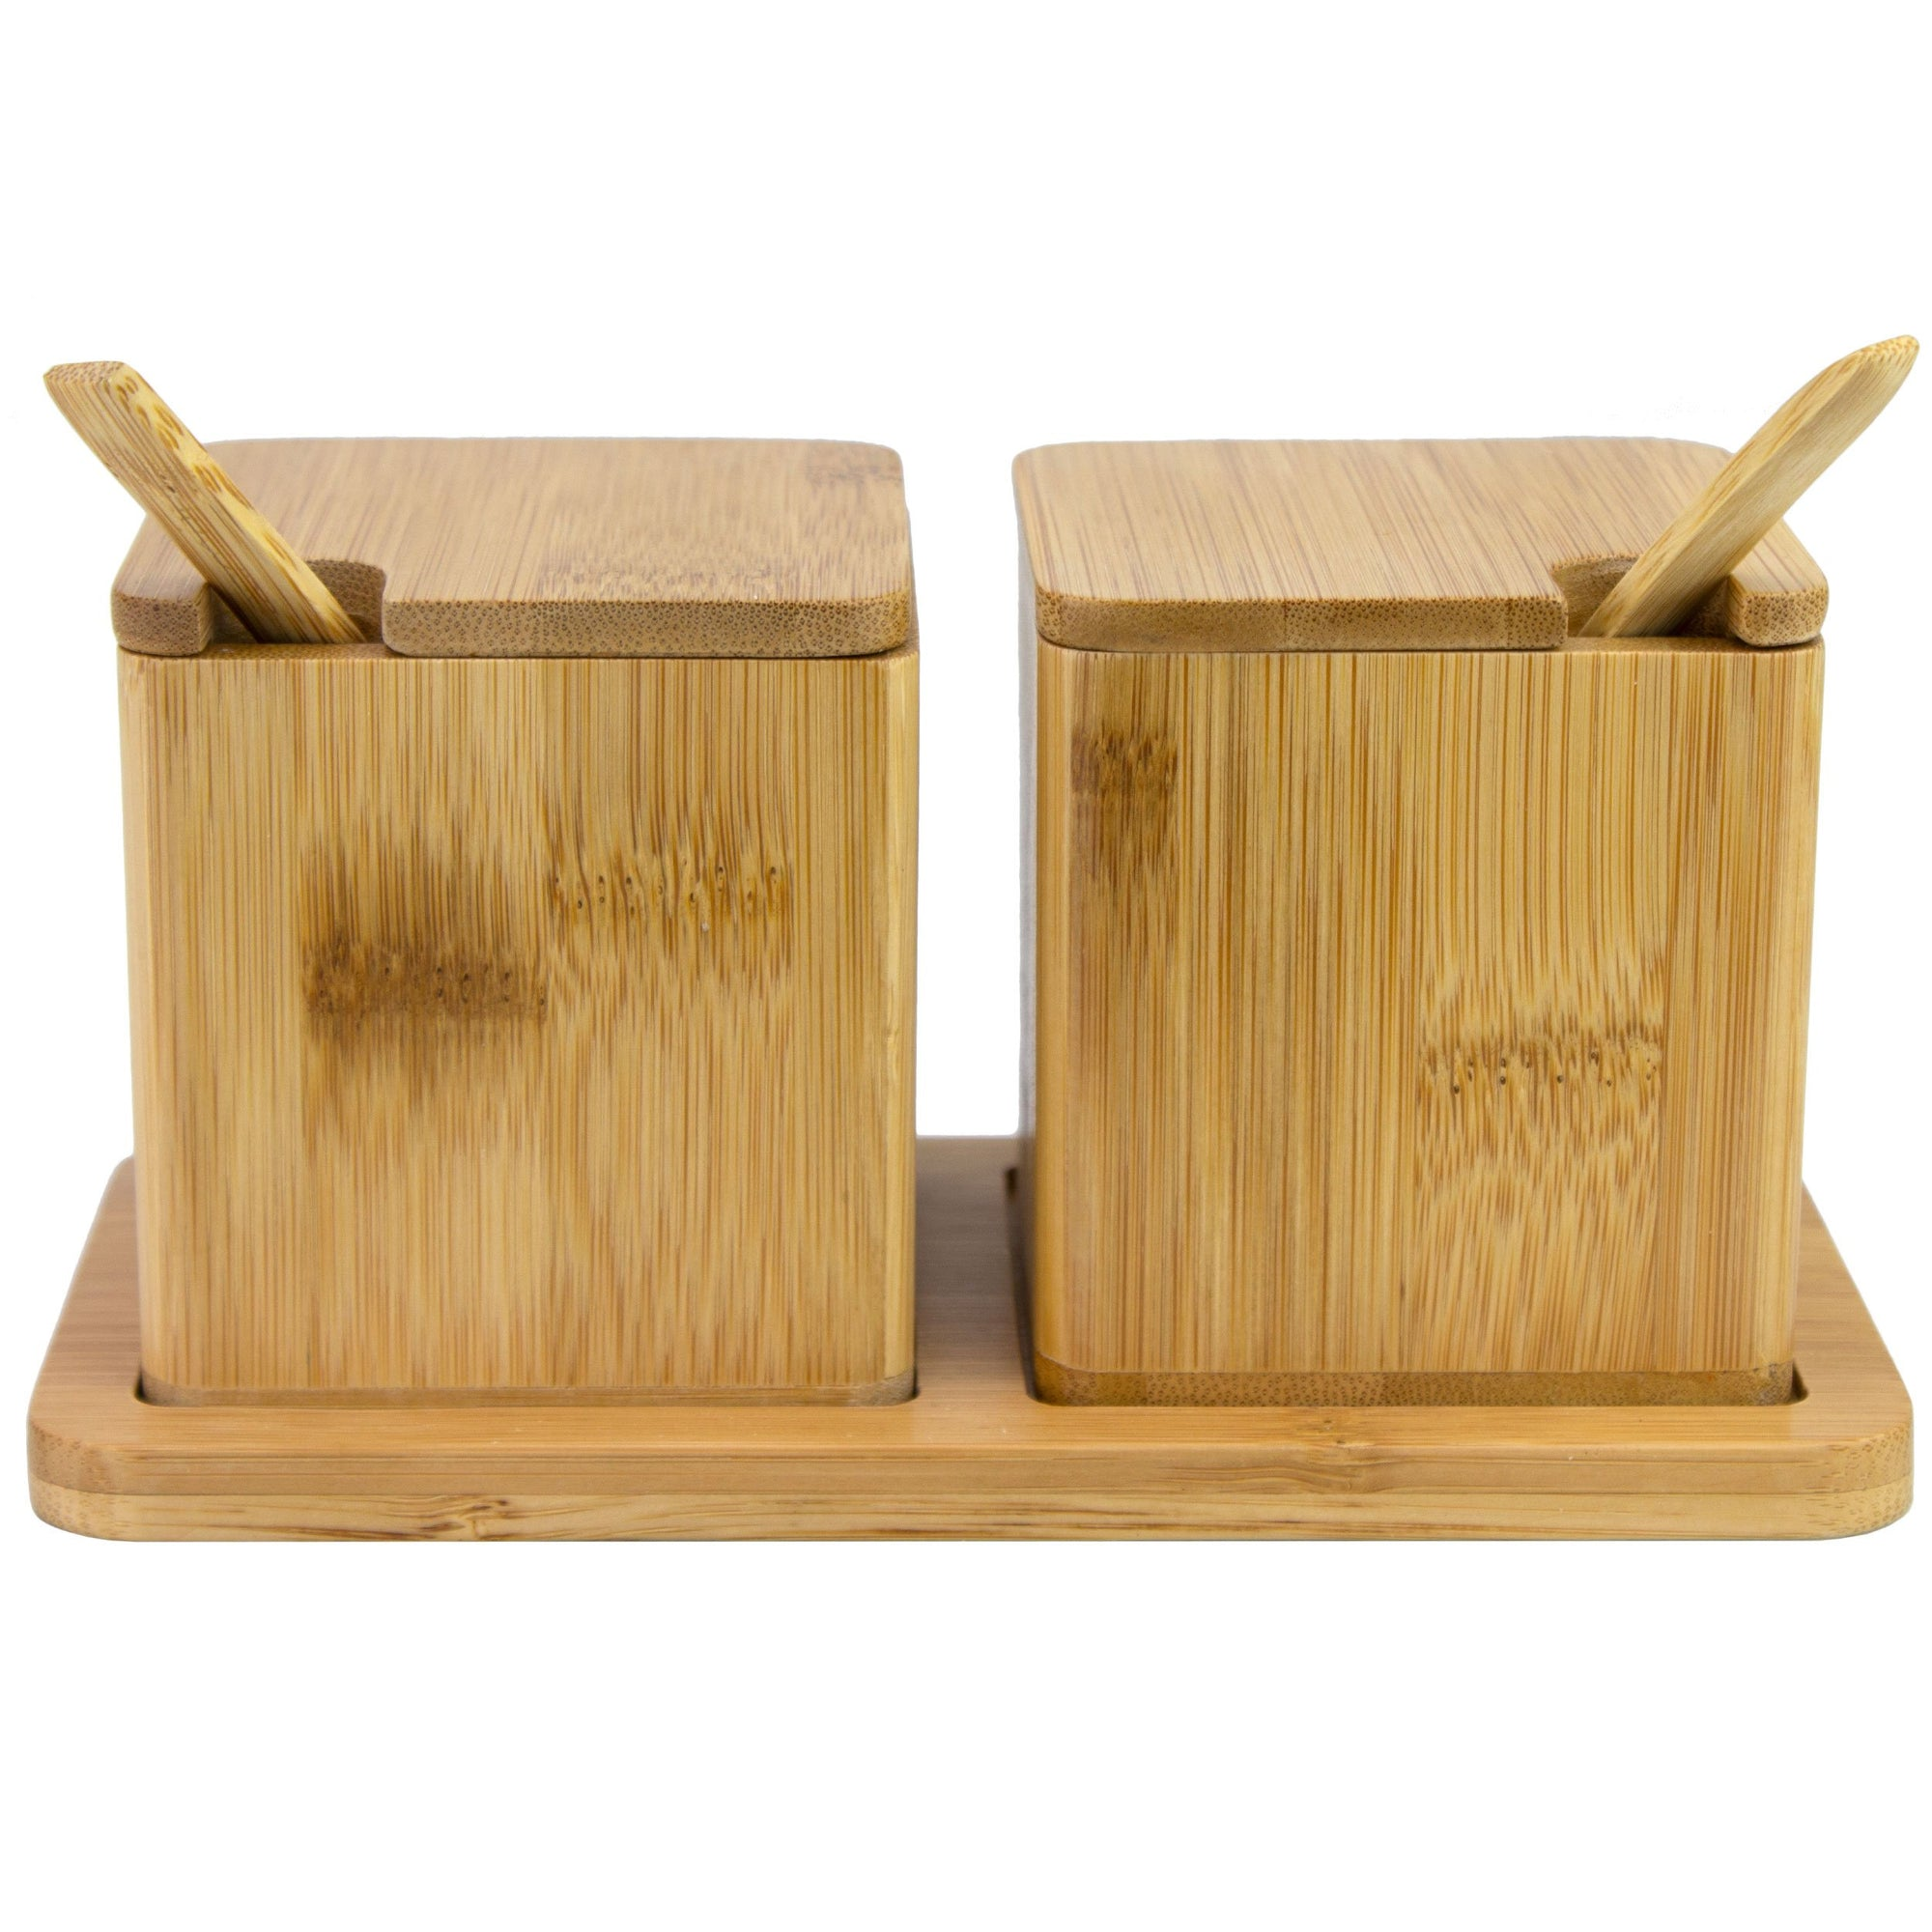 Totally Bamboo Double Dipper Salt Boxes